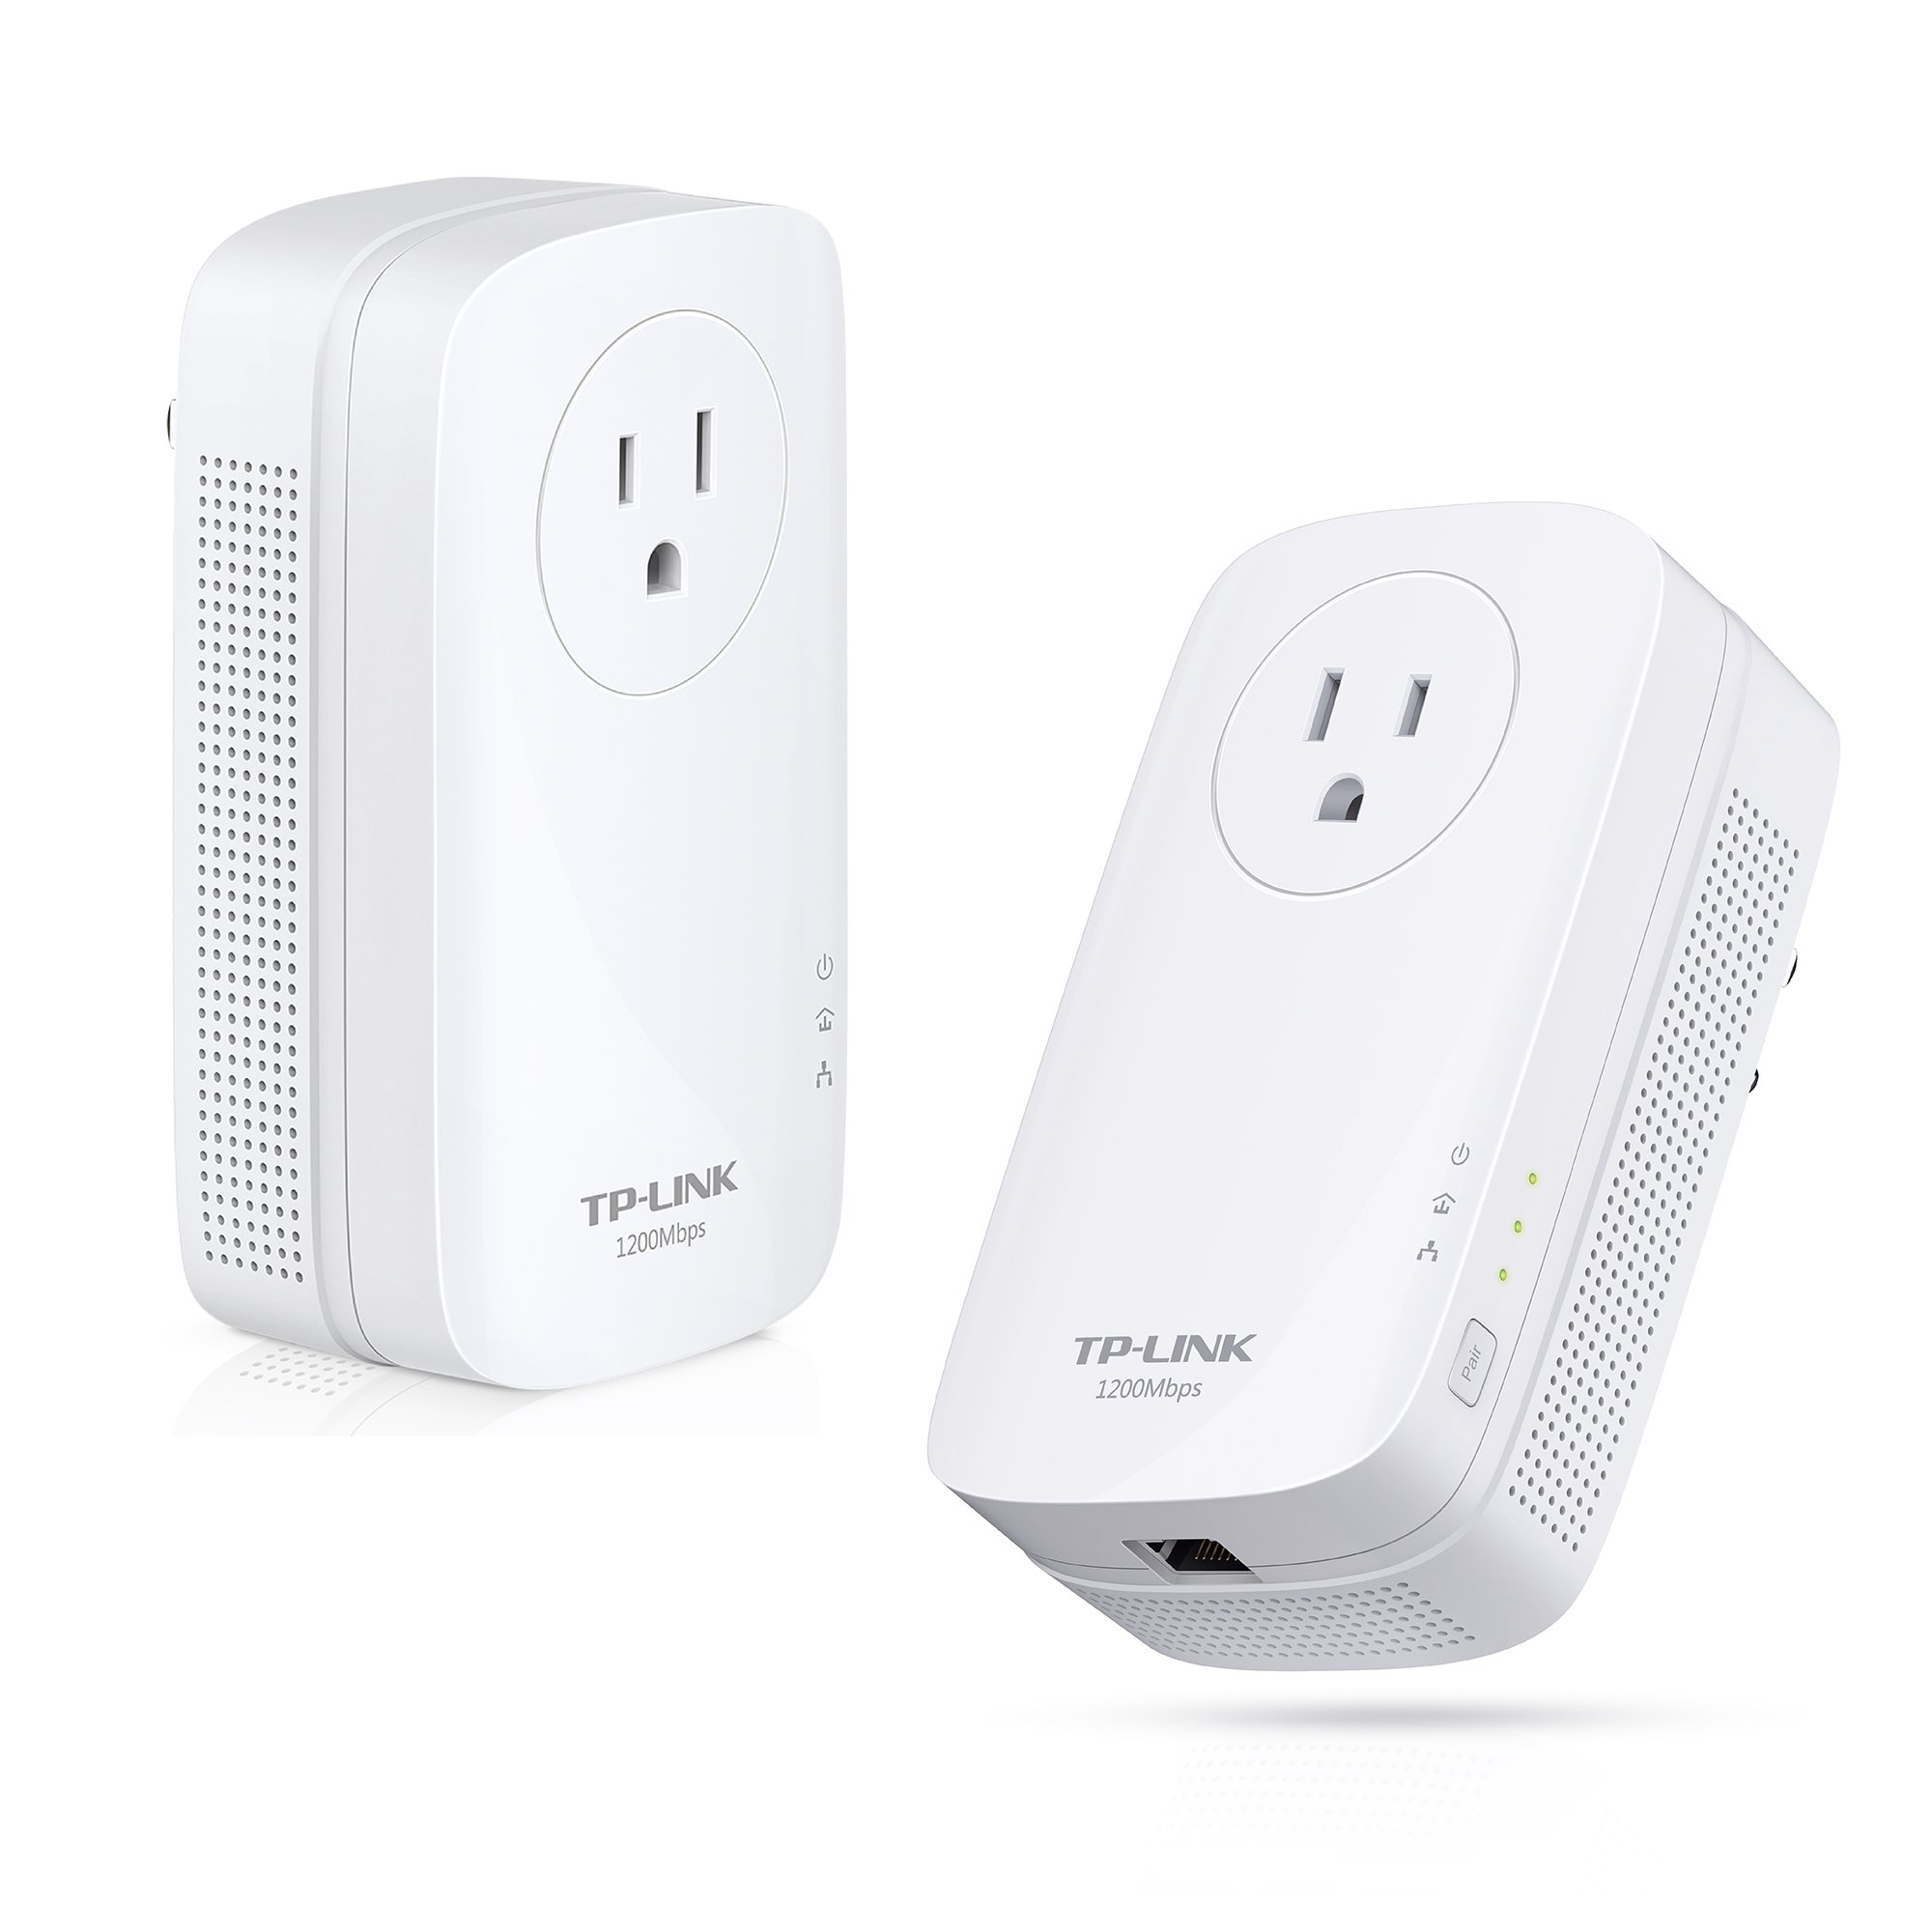 TP-Link AV1200 Gigabit Powerline ethernet Adapter, Power Outlet Pass-through, Powerline speeds Up to 1200Mbps (TL-PA8010P KIT)